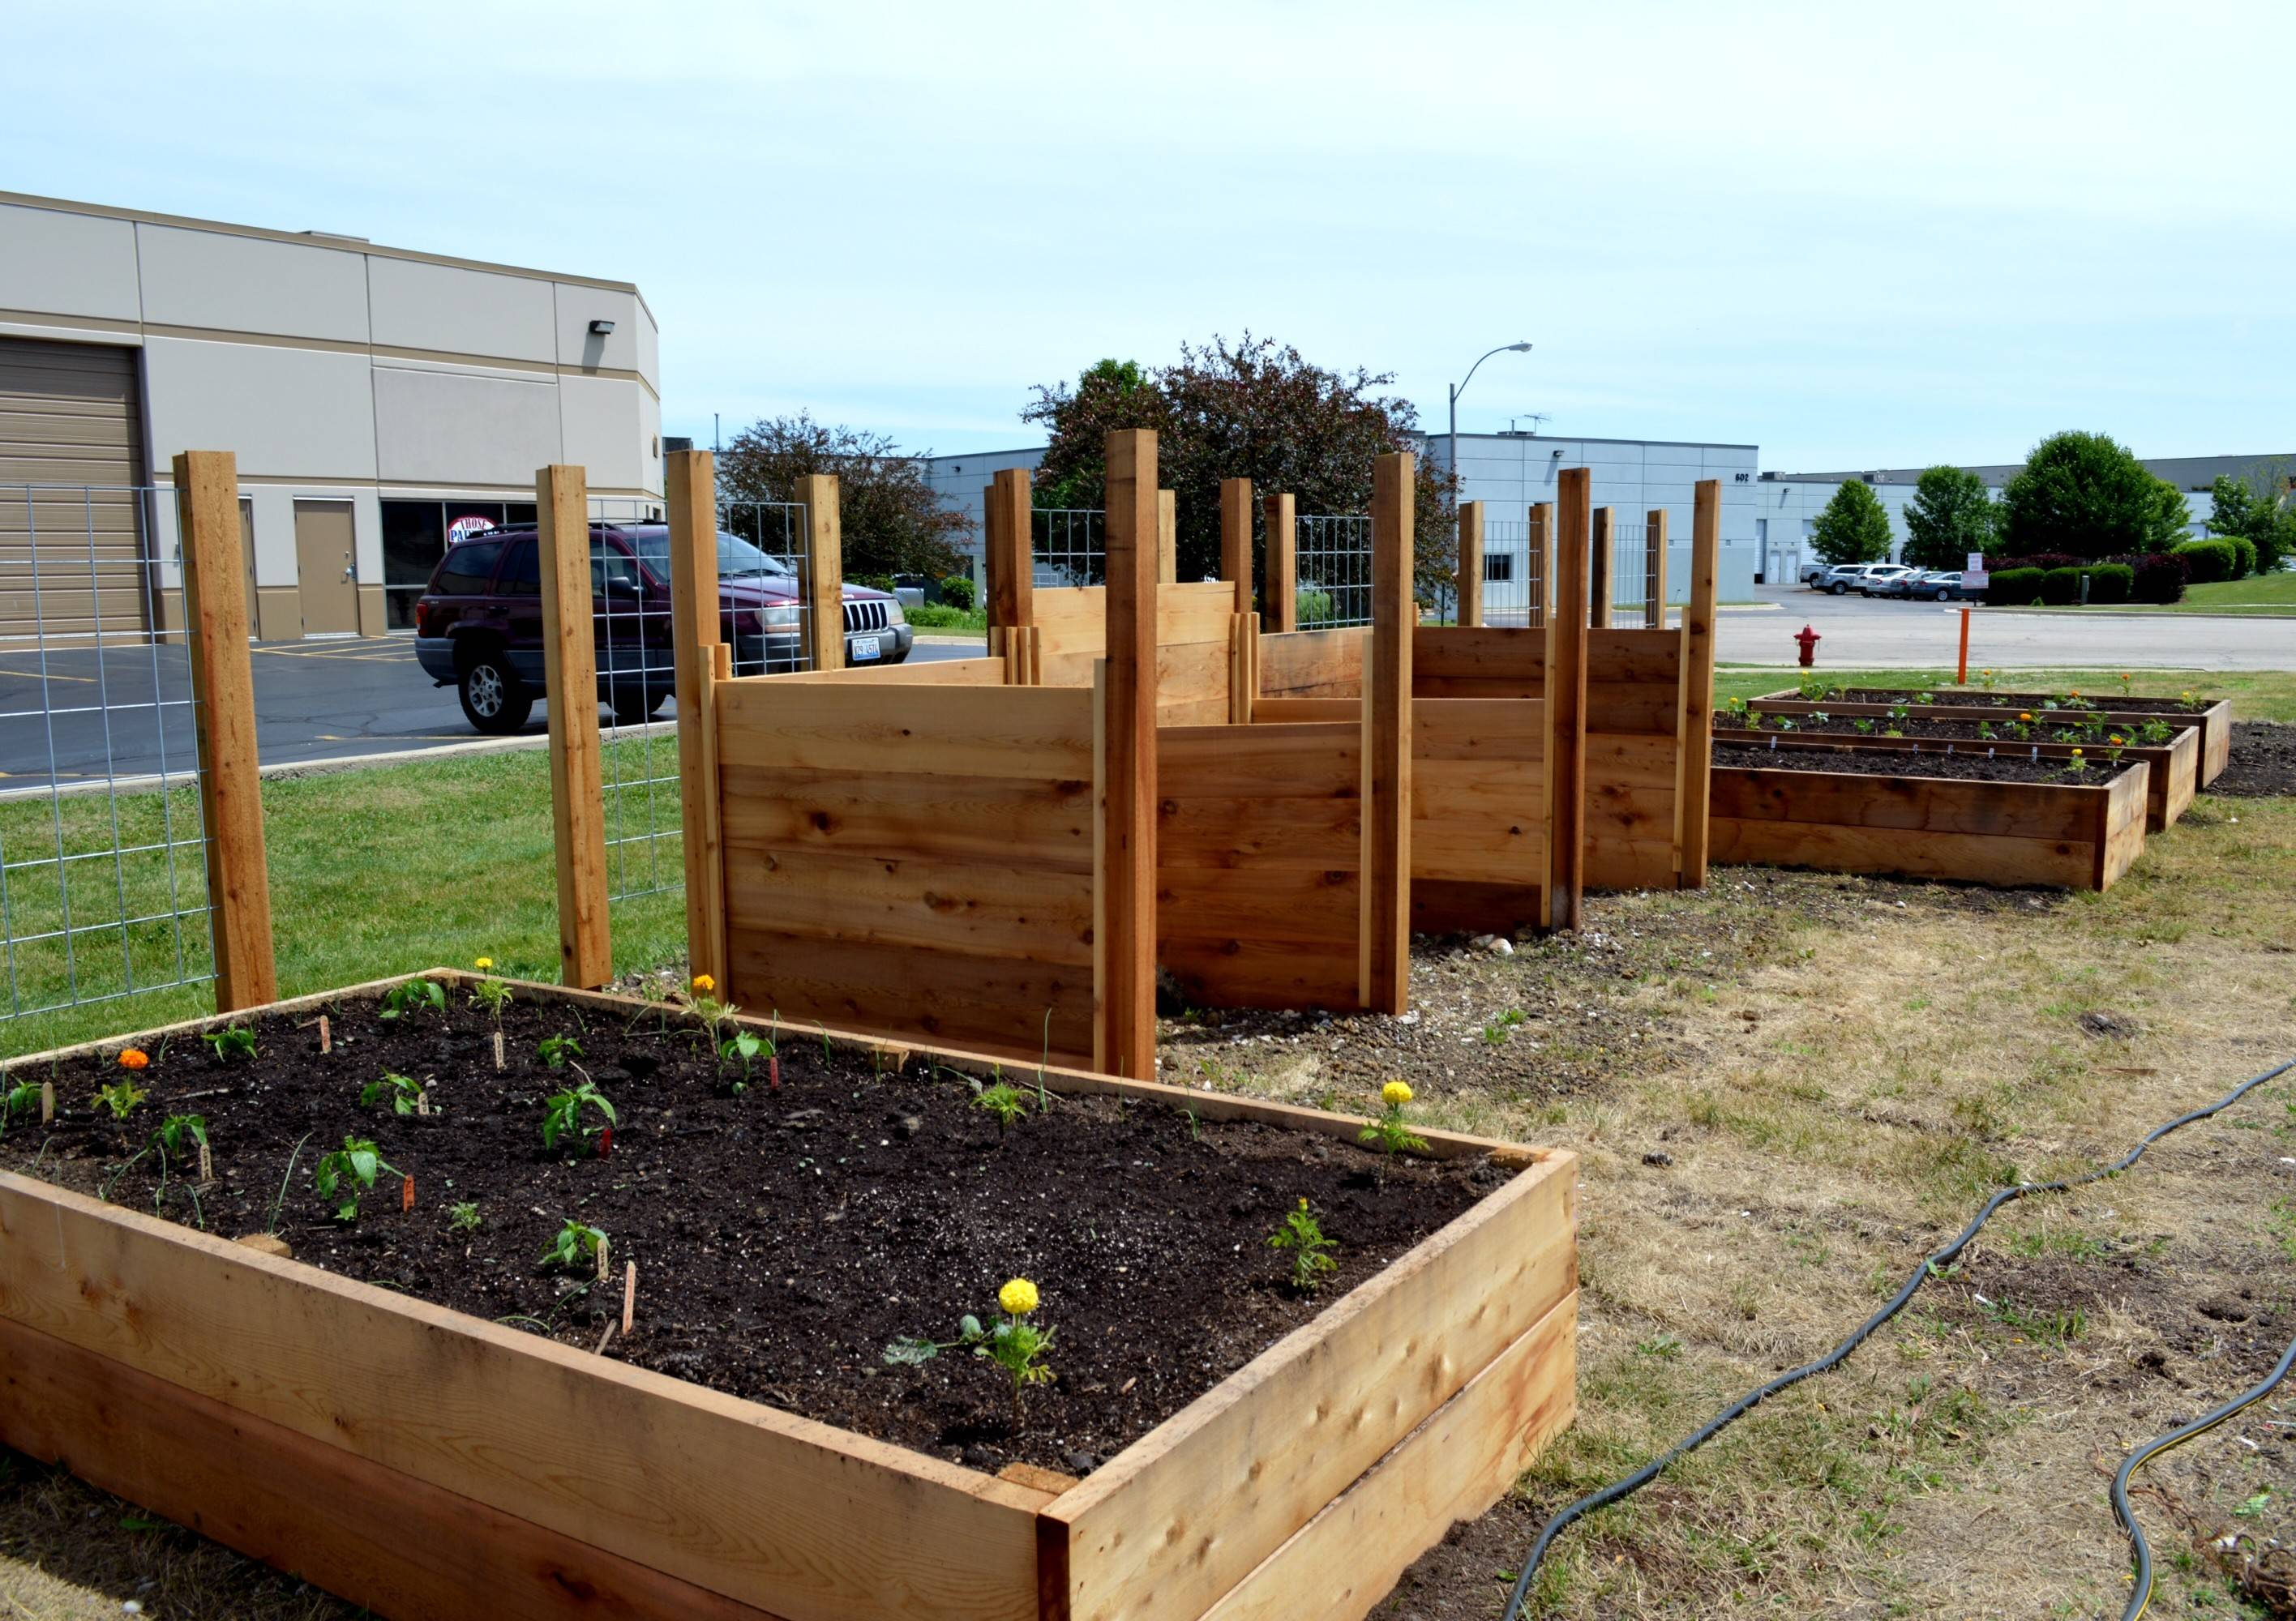 Flower and vegetable gardens are tended by employees and will be used for lunchtime salads once the initial crop is harvested.